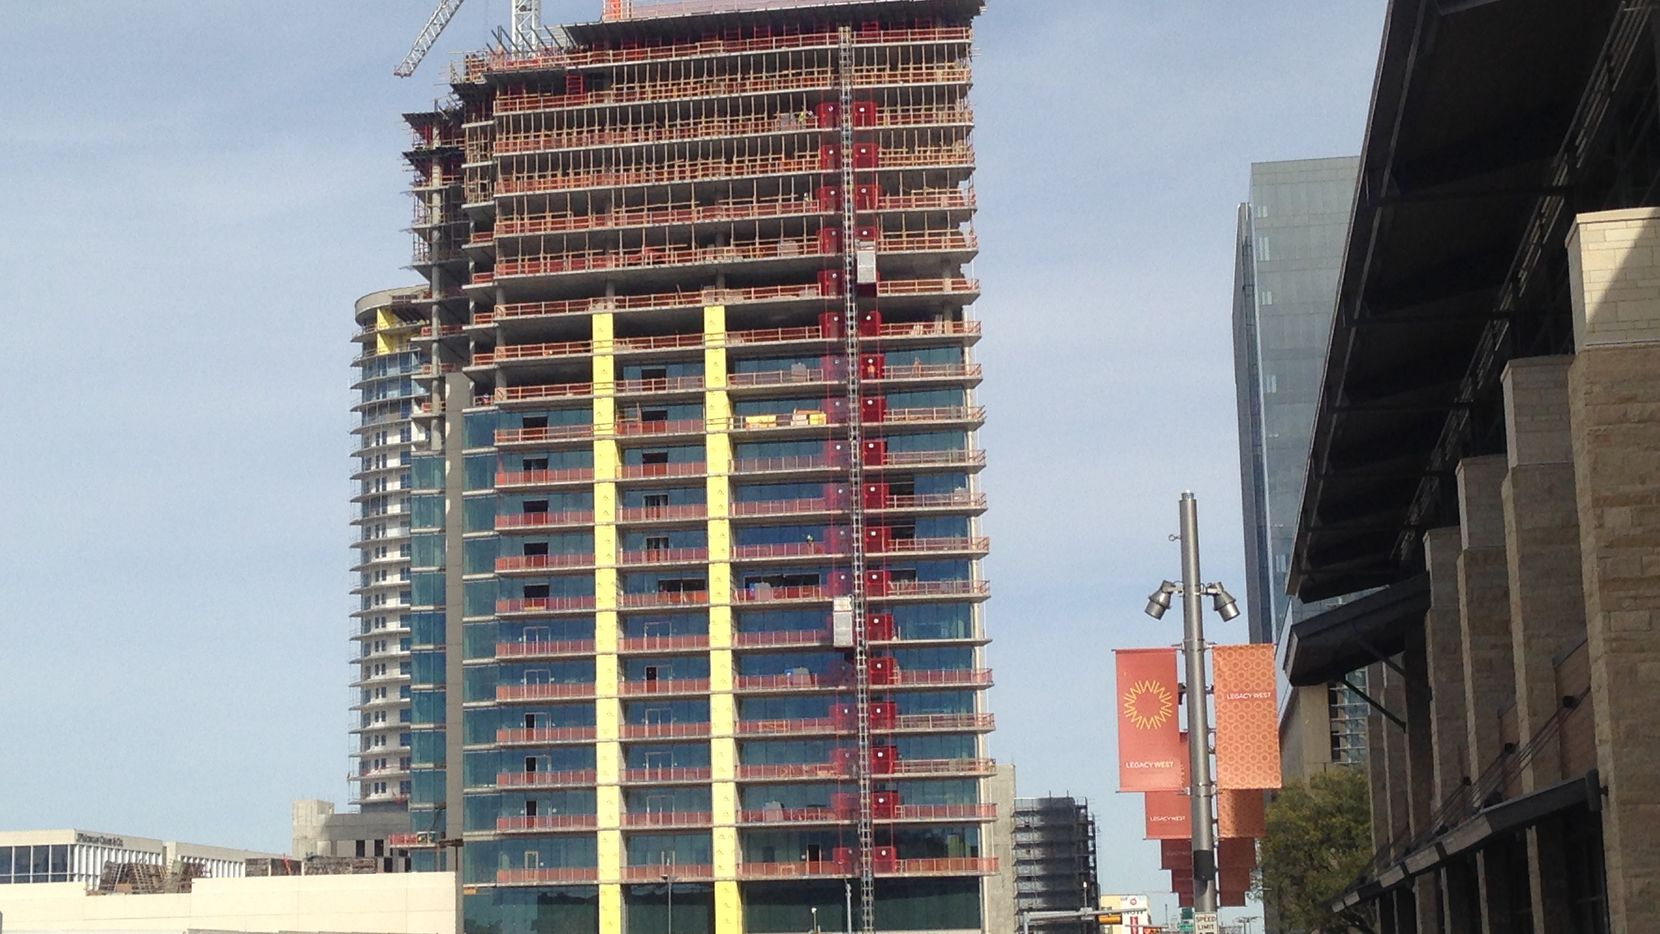 Construction has topped out on the 27-story Windrose Tower in Legacy West.